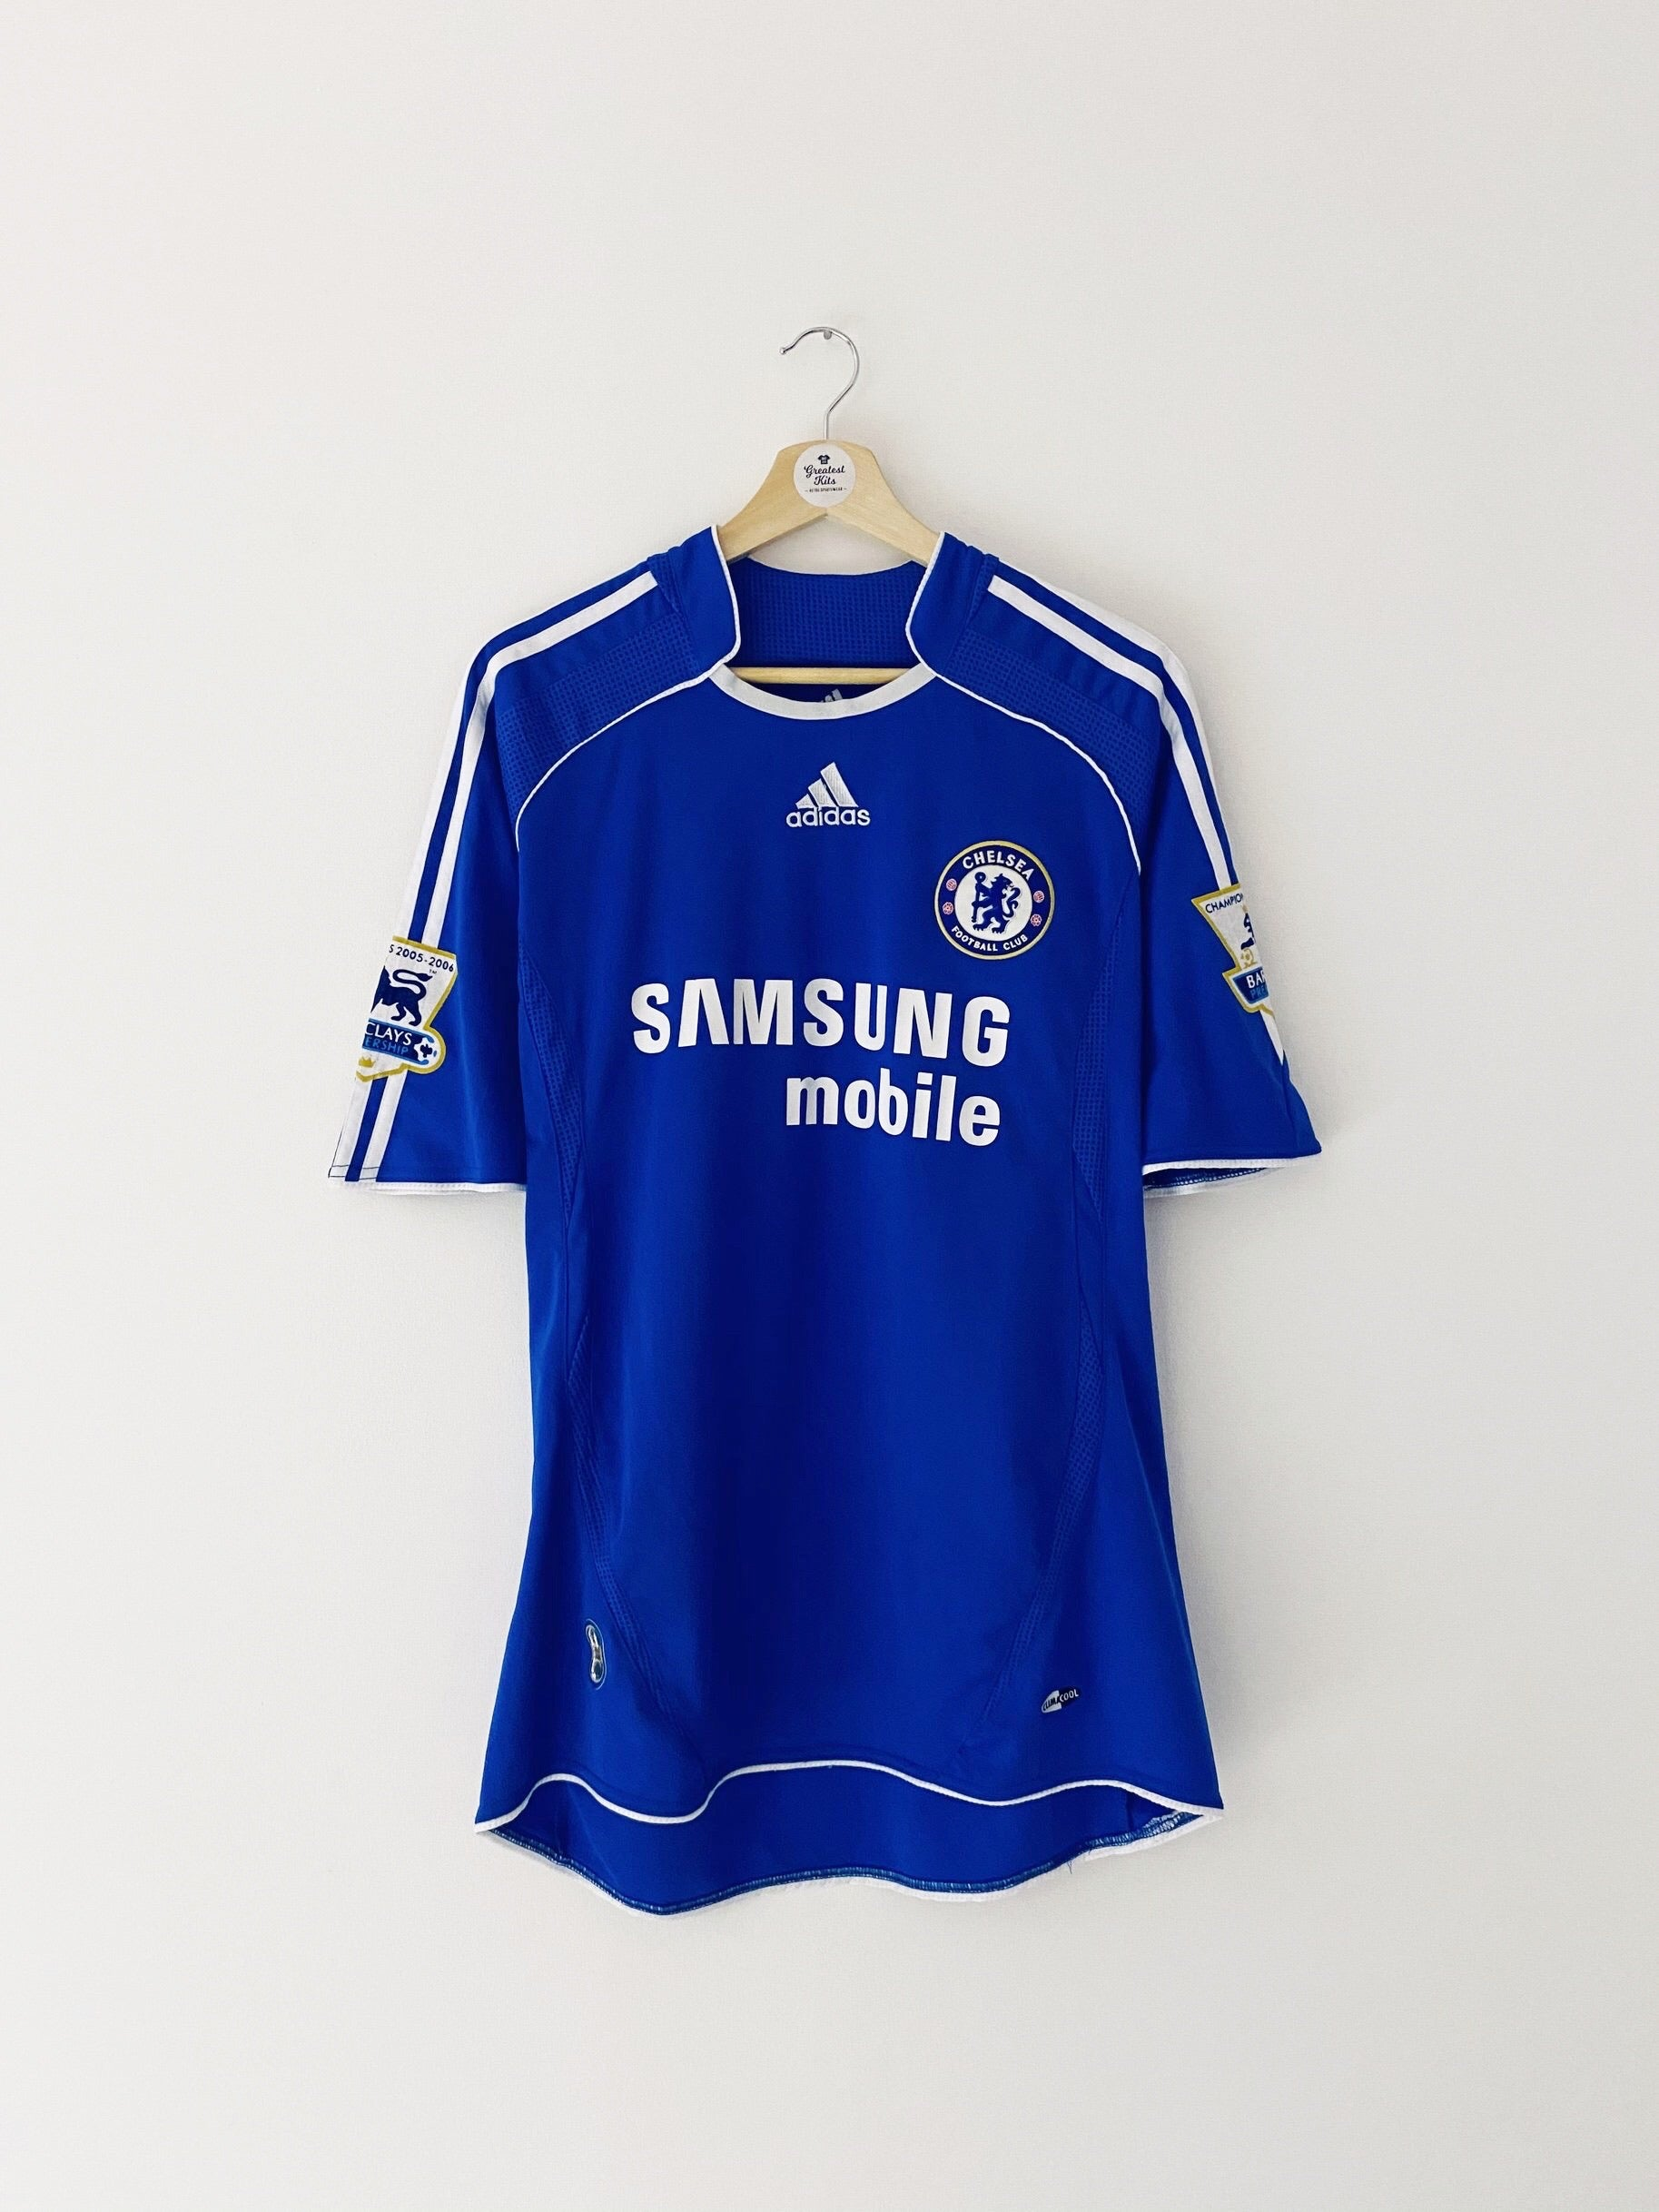 2006/07 Chelsea Home Shirt Drogba #11 (XL) 8.5/10